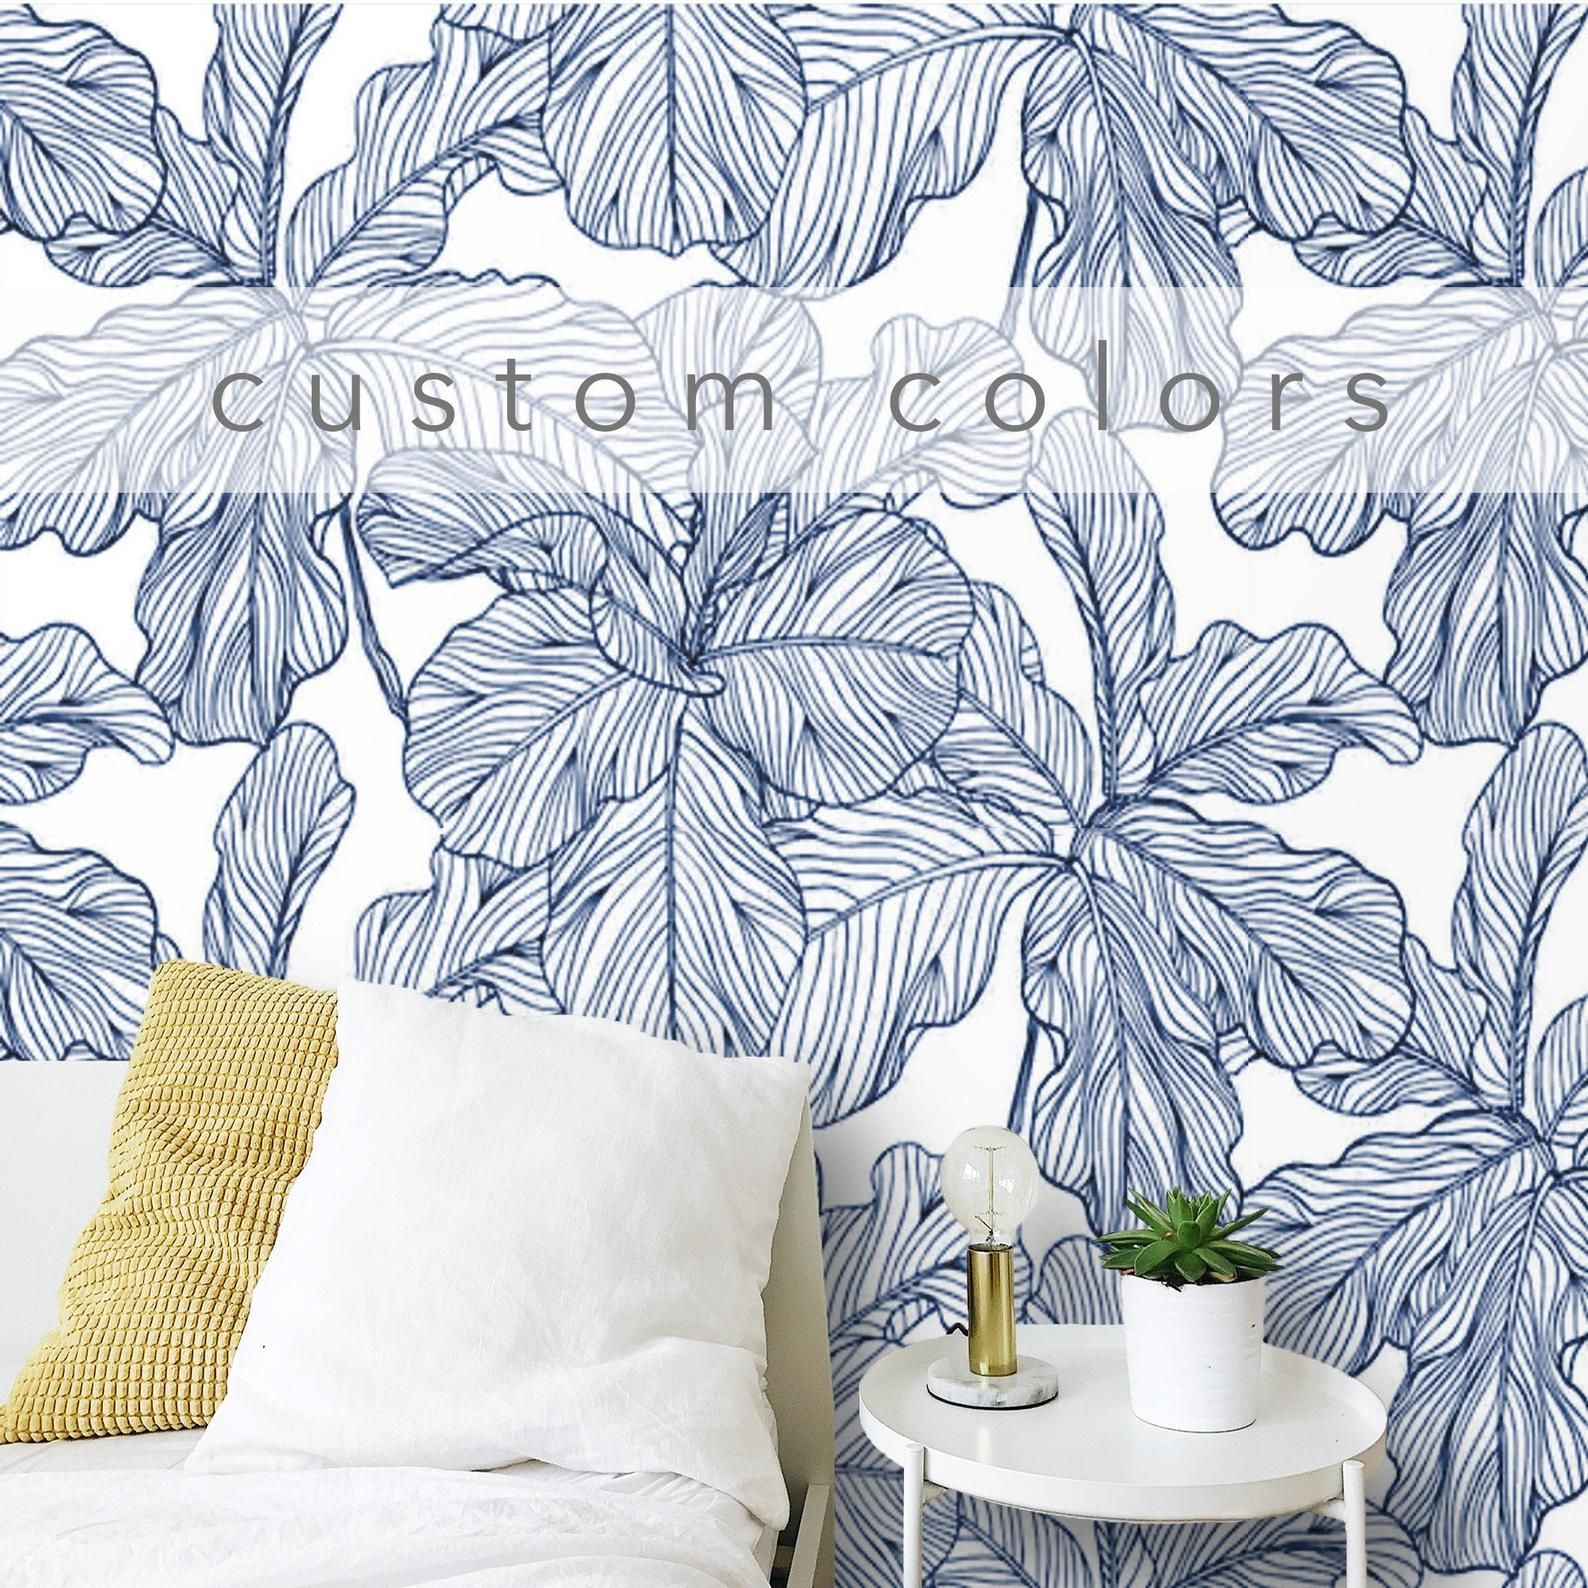 Peel And Stick Wallpaper Leaves Blue And White Removable Self Adhesive Traditional Wallpaper Mural Custom Color Tropical Wallpaper Non Woven Blue And White Wallpaper Peel And Stick Wallpaper Traditional Wallpaper